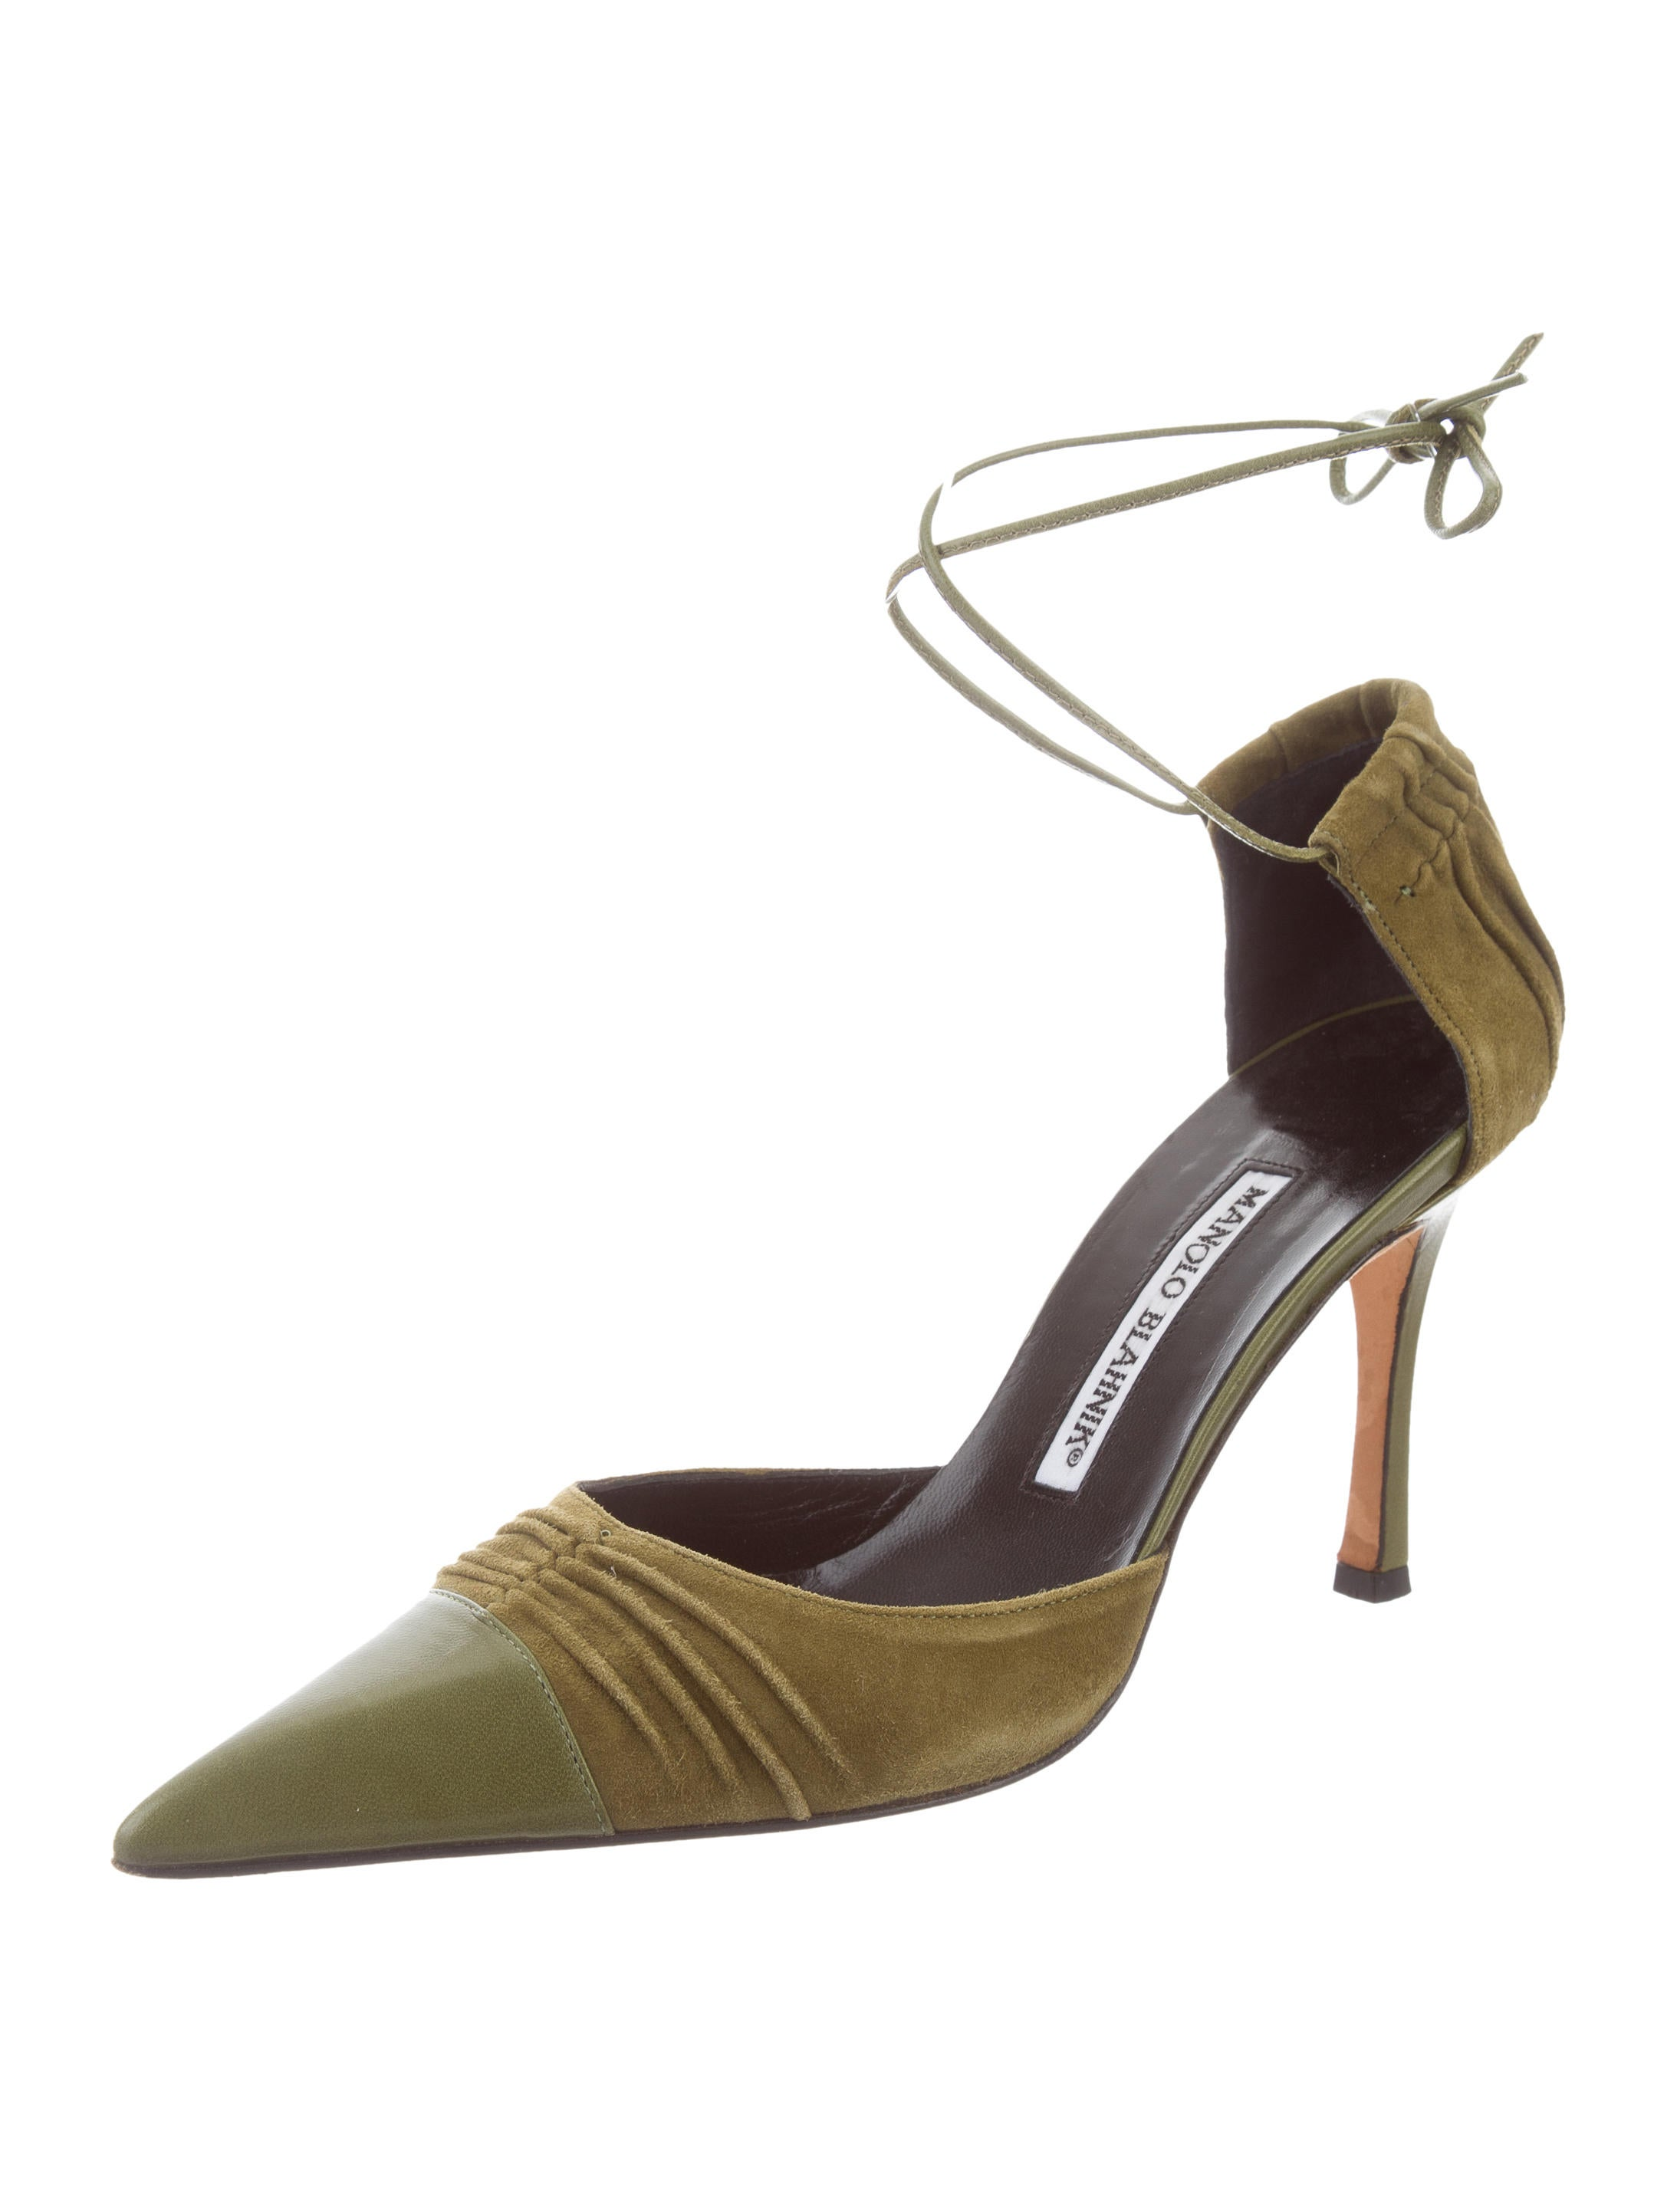 Manolo Blahnik Ruched Slingback Sandals cheap sale with mastercard 0yY801M5